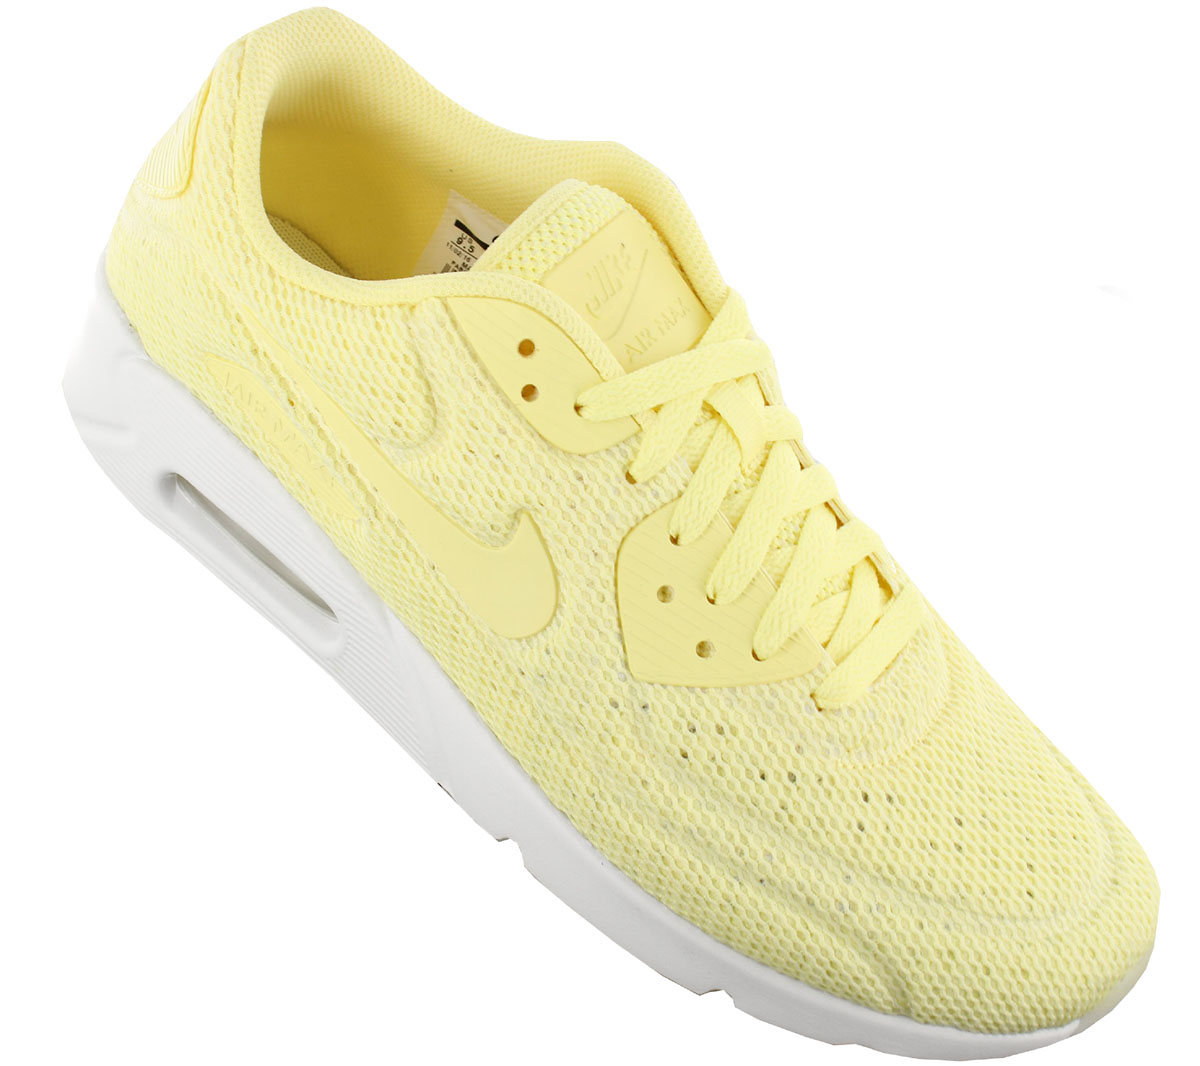 Details about Nike Air Max 90 Ultra 2.0 BR MENS TRAINER SHOES